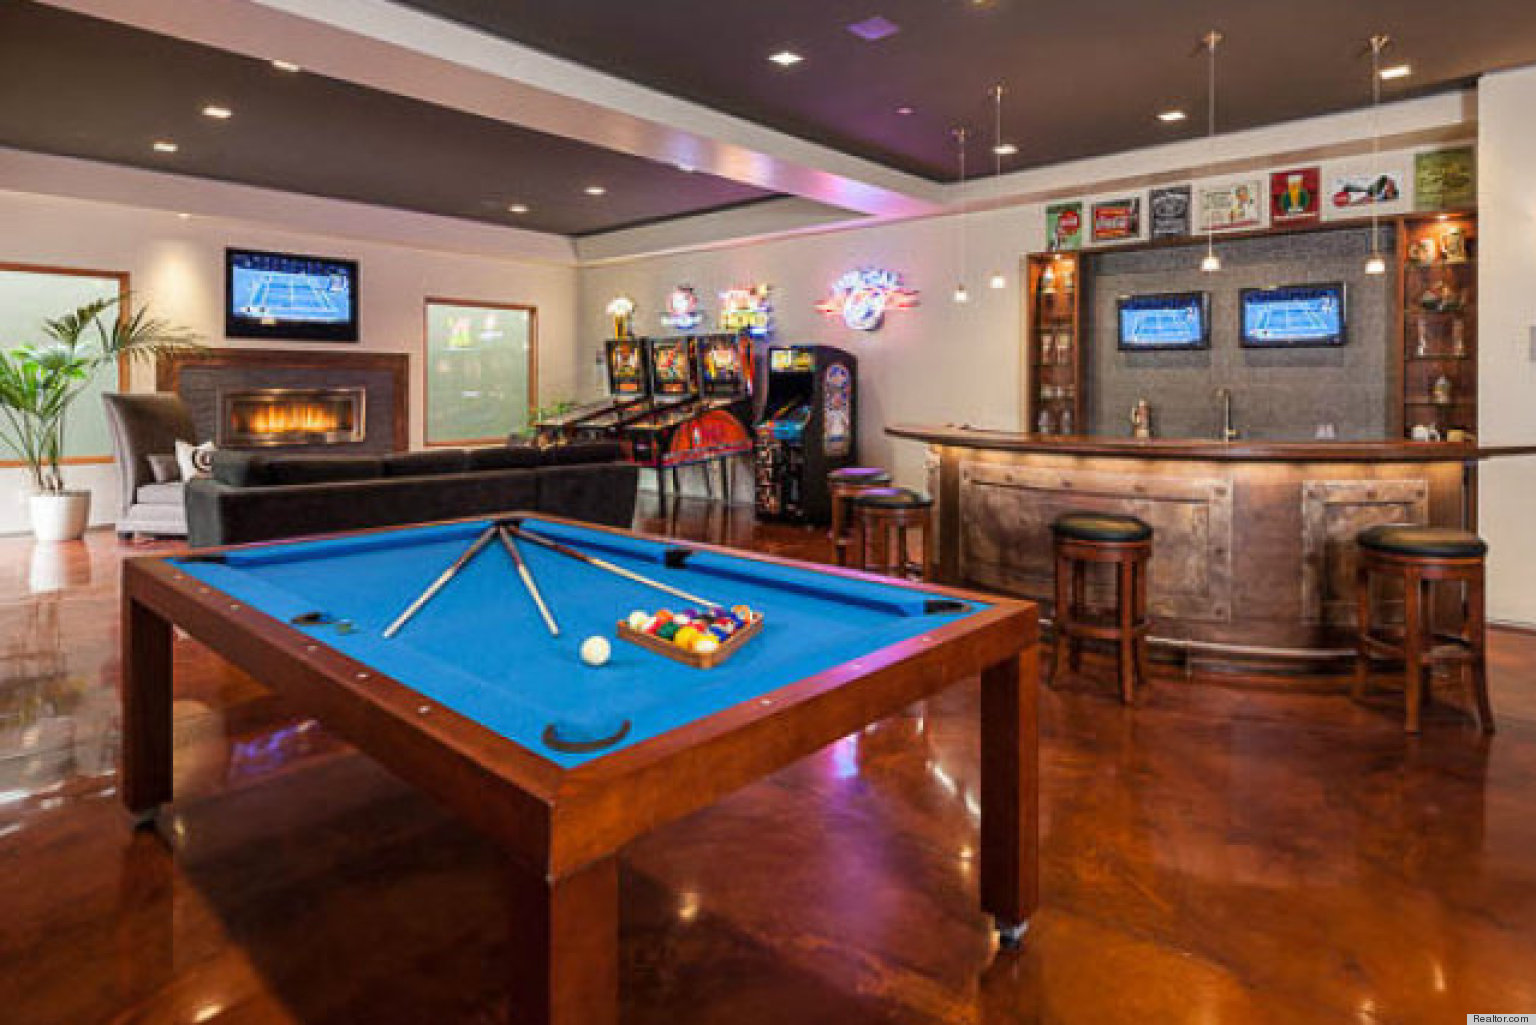 10 Stunning Home Bars That Are Always Ready For Guests PHOTOS  HuffPost